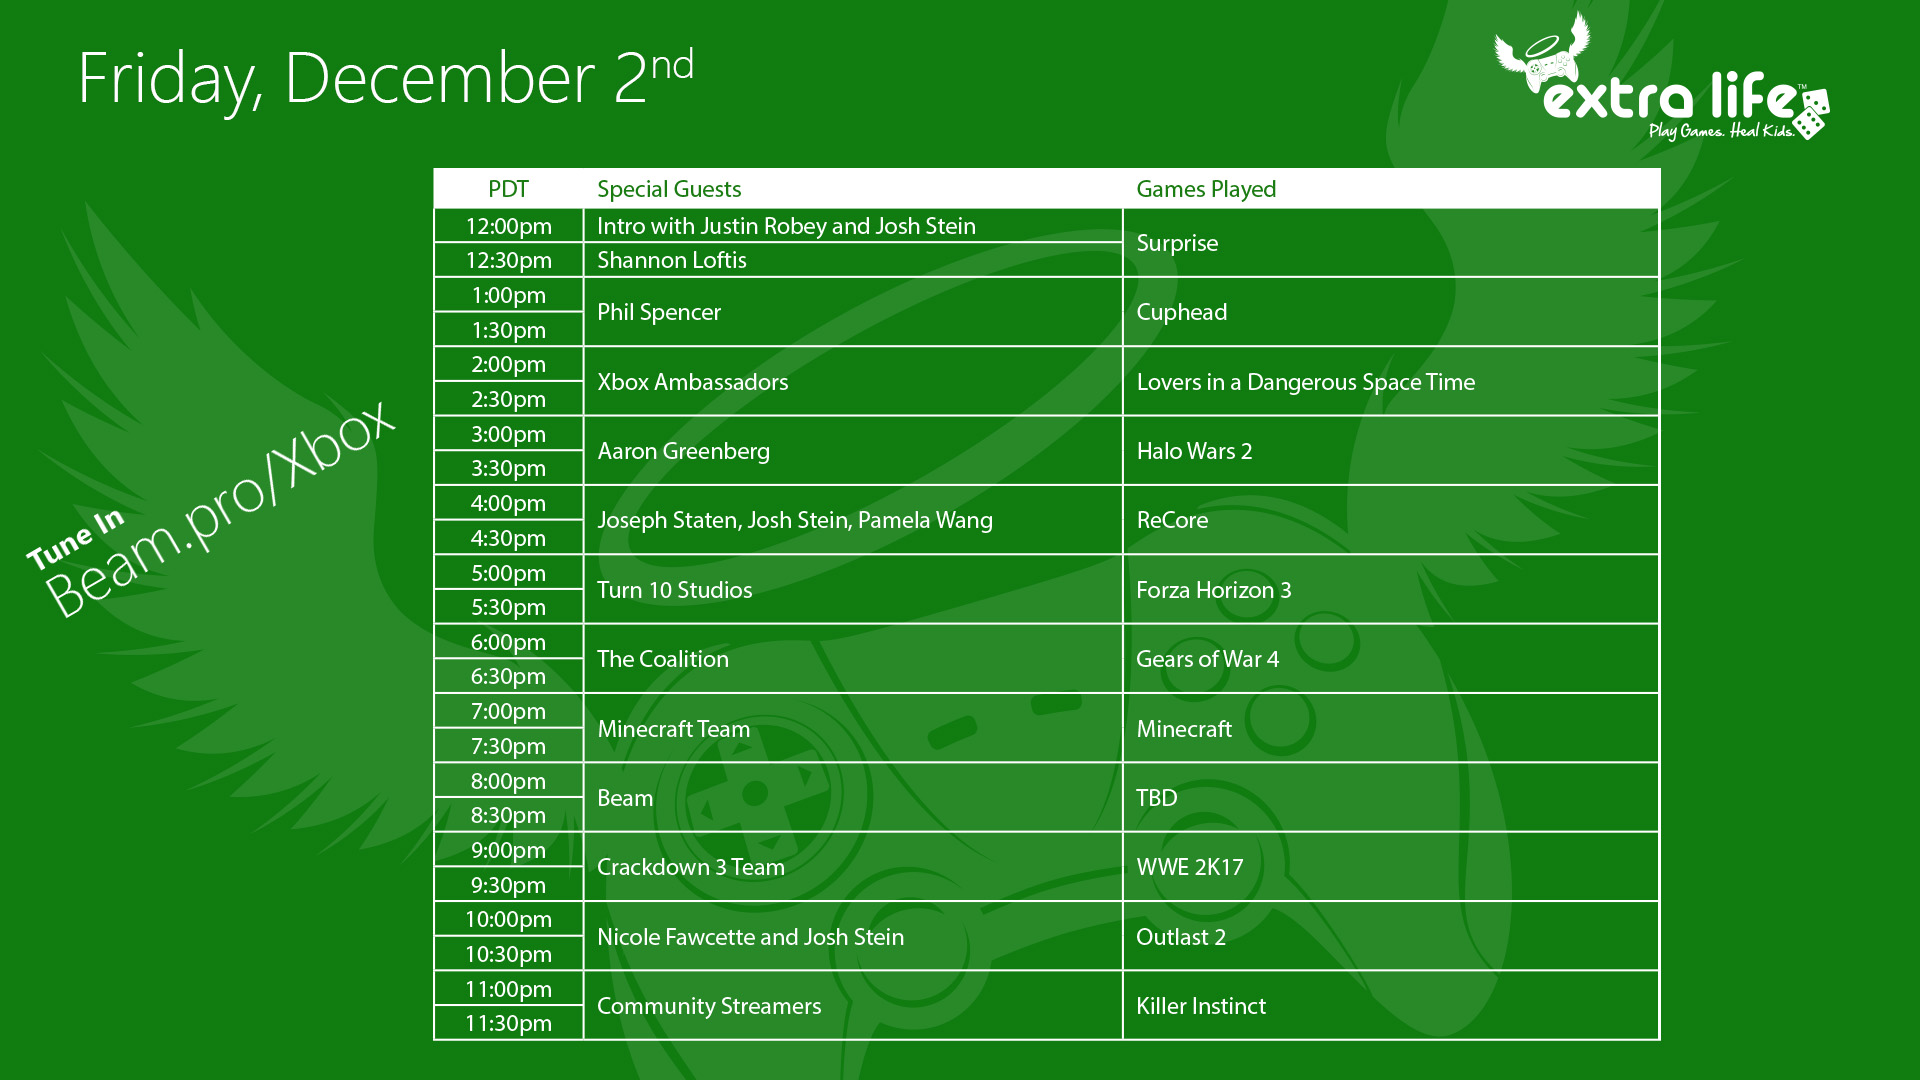 schedule_dec2_shortened_version2